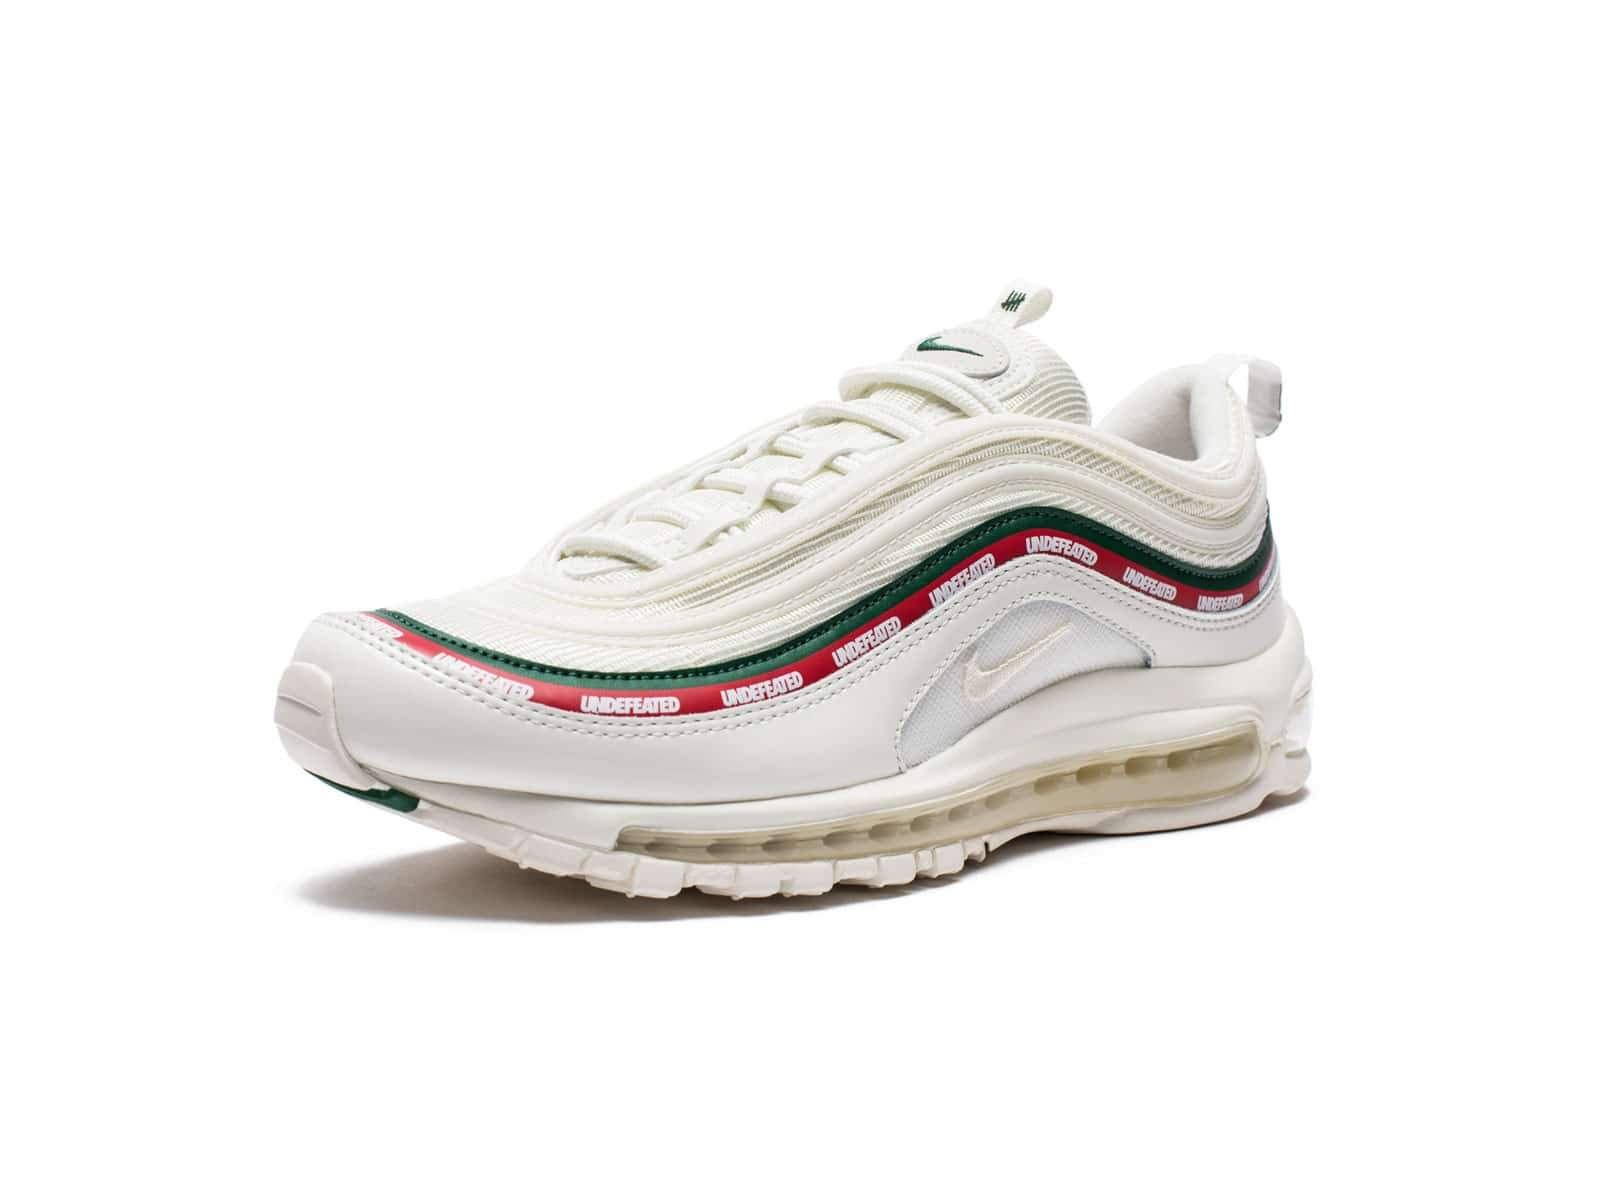 undftd x nike air max 97 og white